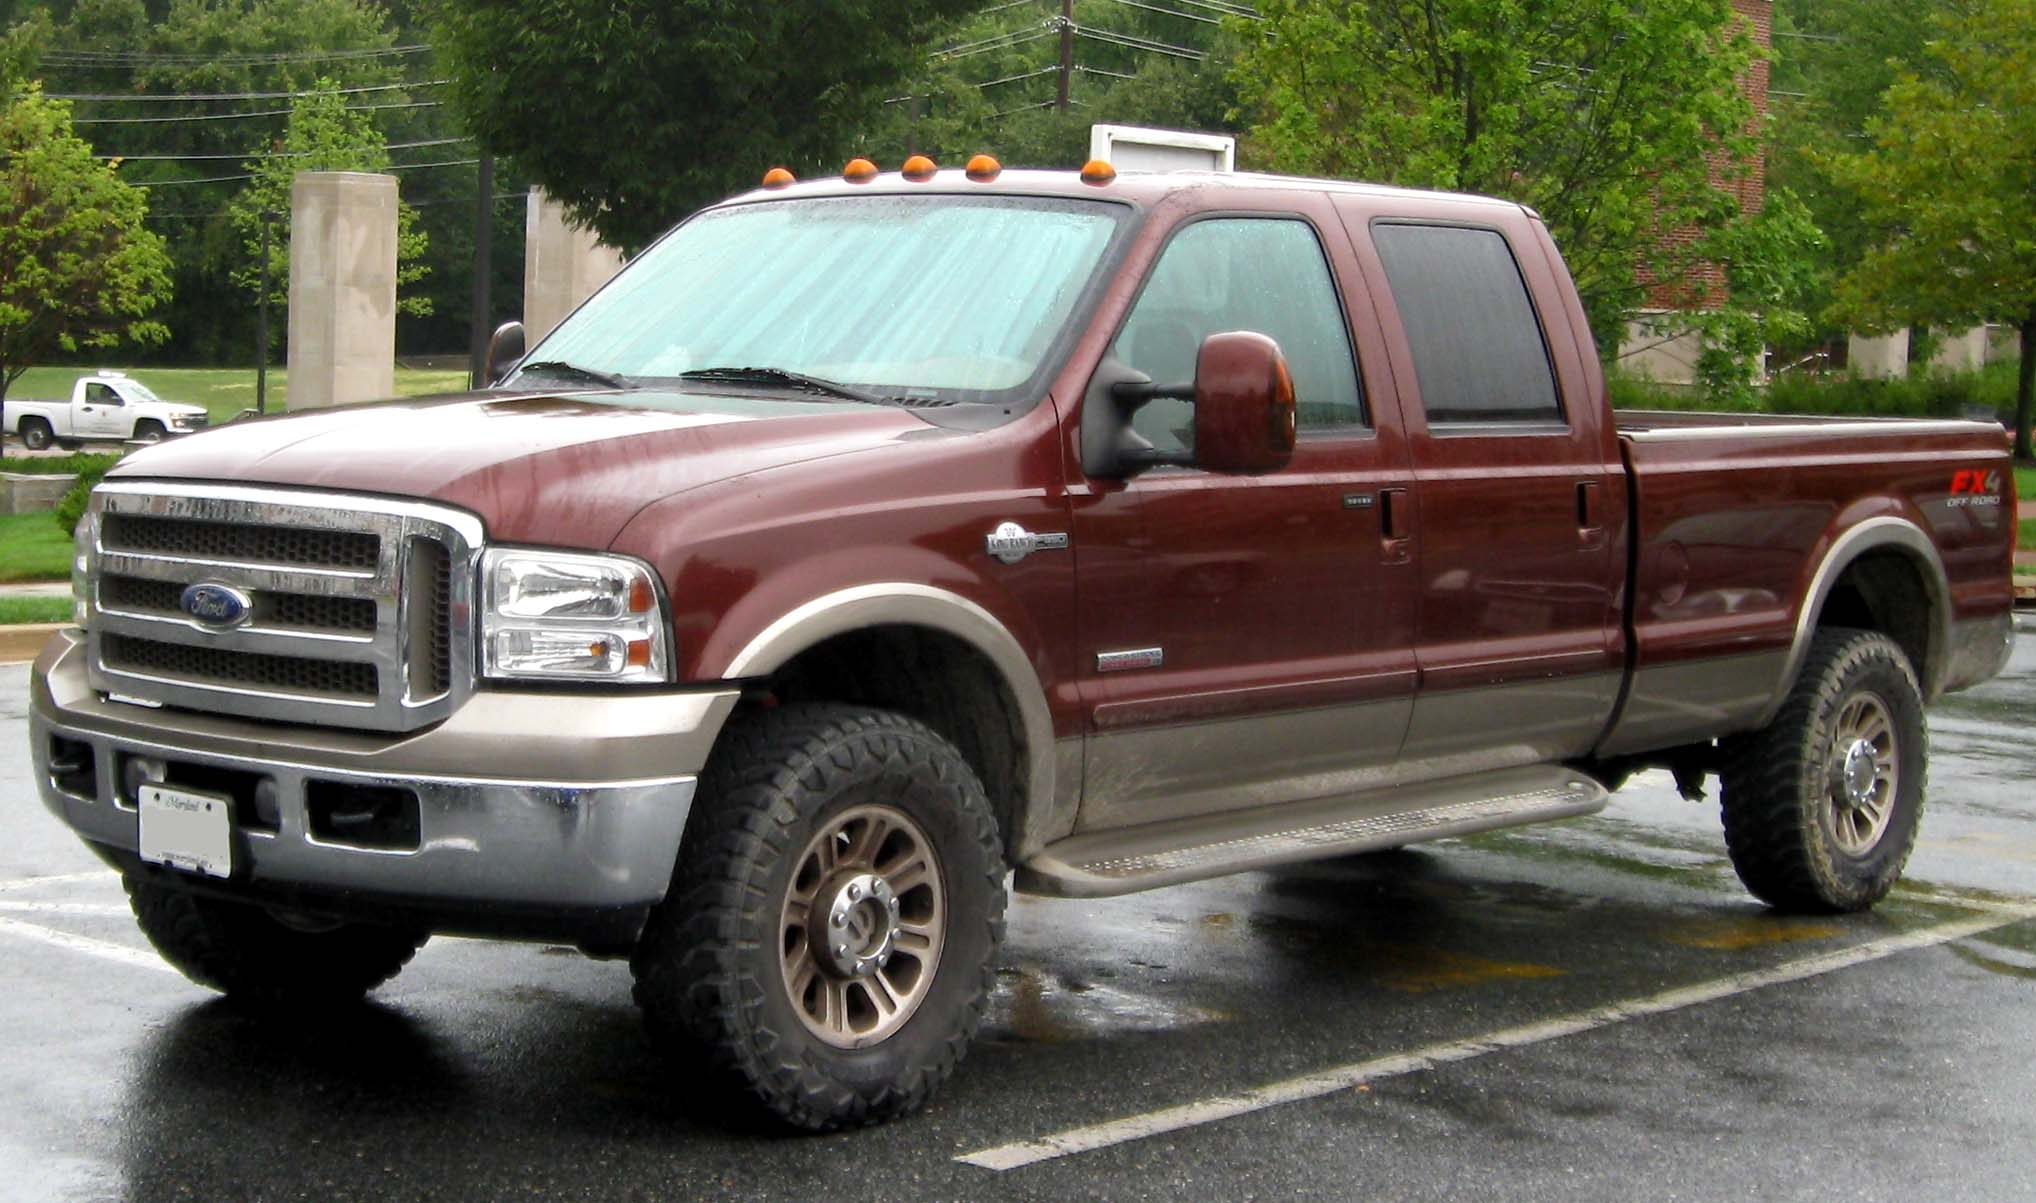 Ford f-350 photo - 1